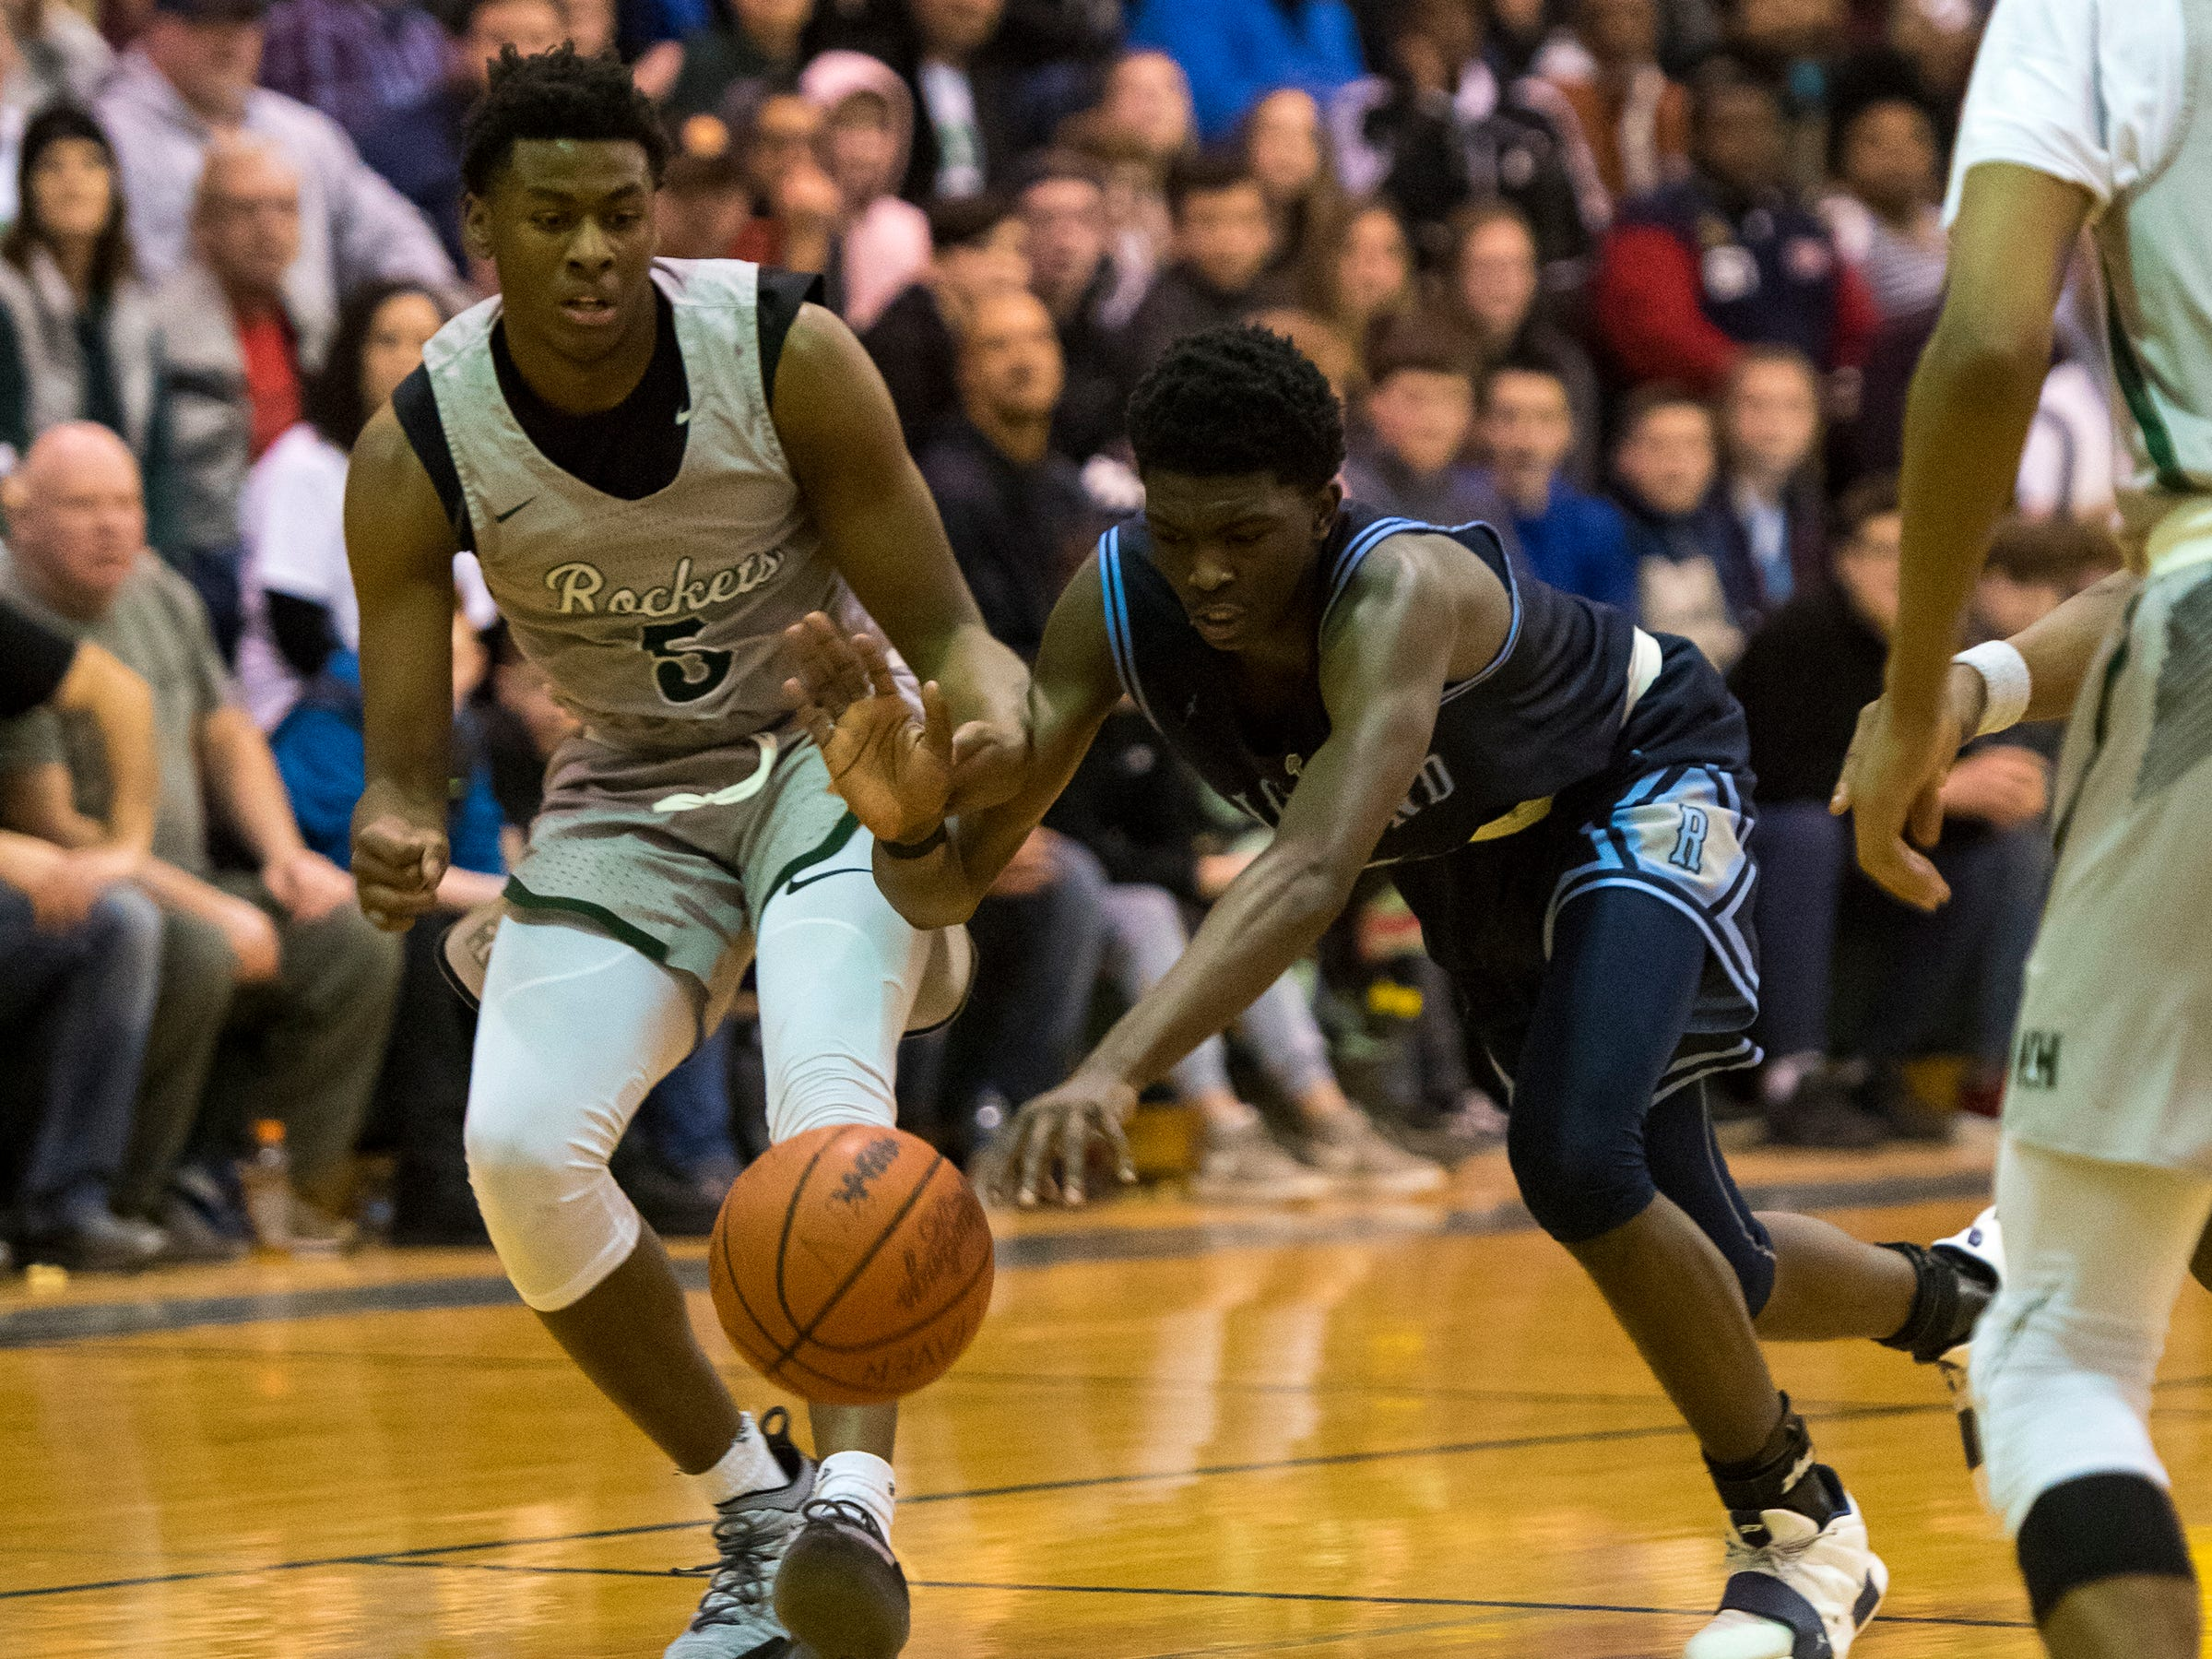 Richmond High School guard Daveyon Henderson (right) and New Haven guard Trenell Payne chase a loose ball during the MHSAA Division 2 Boys Basketball District Finals Friday, March 1, 2019 at New Haven High School.